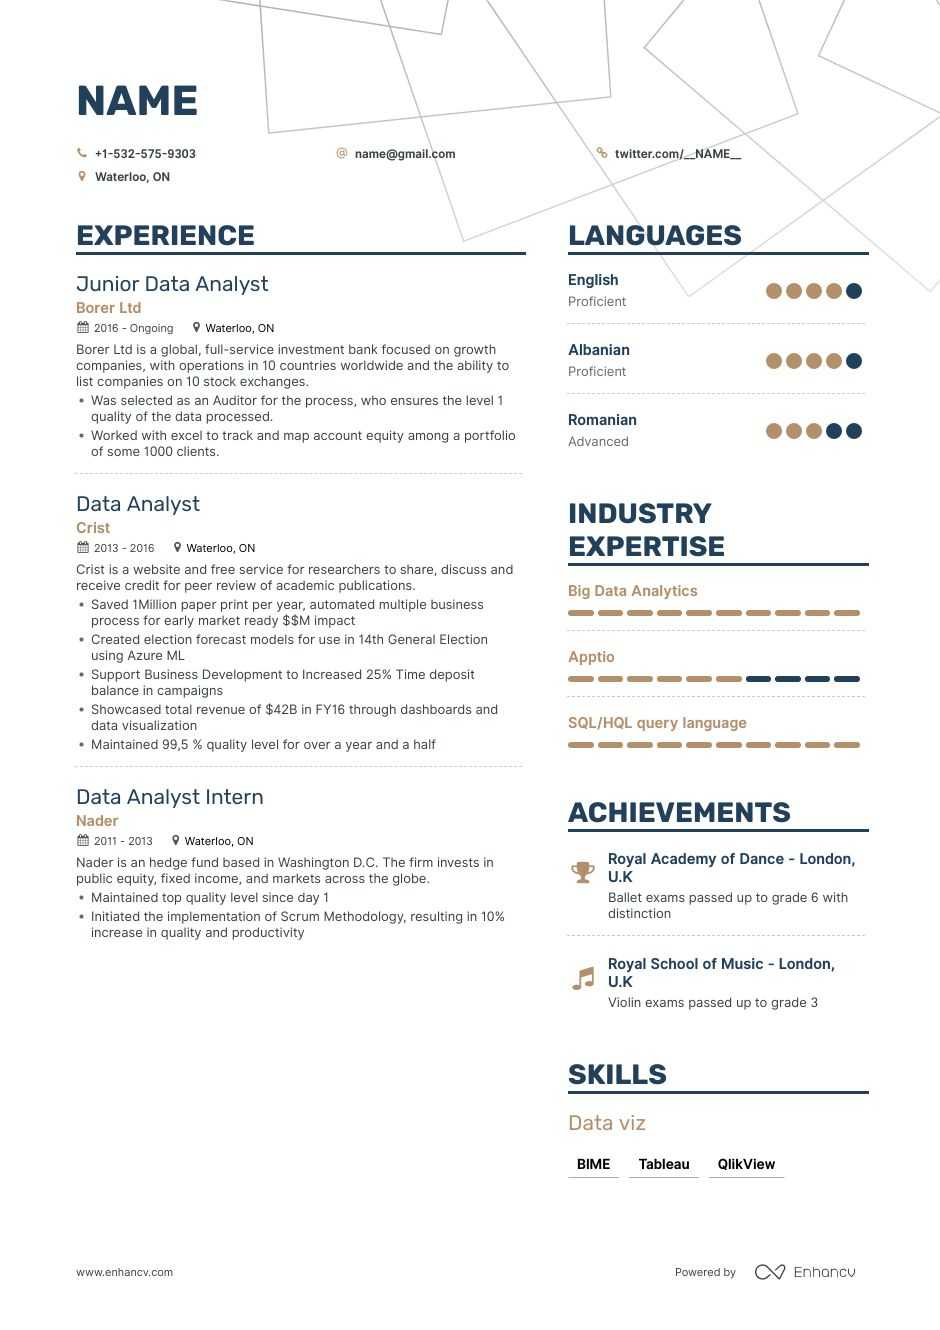 security analyst resume examples skills templates more for information sample accounts Resume Information Security Analyst Sample Resume